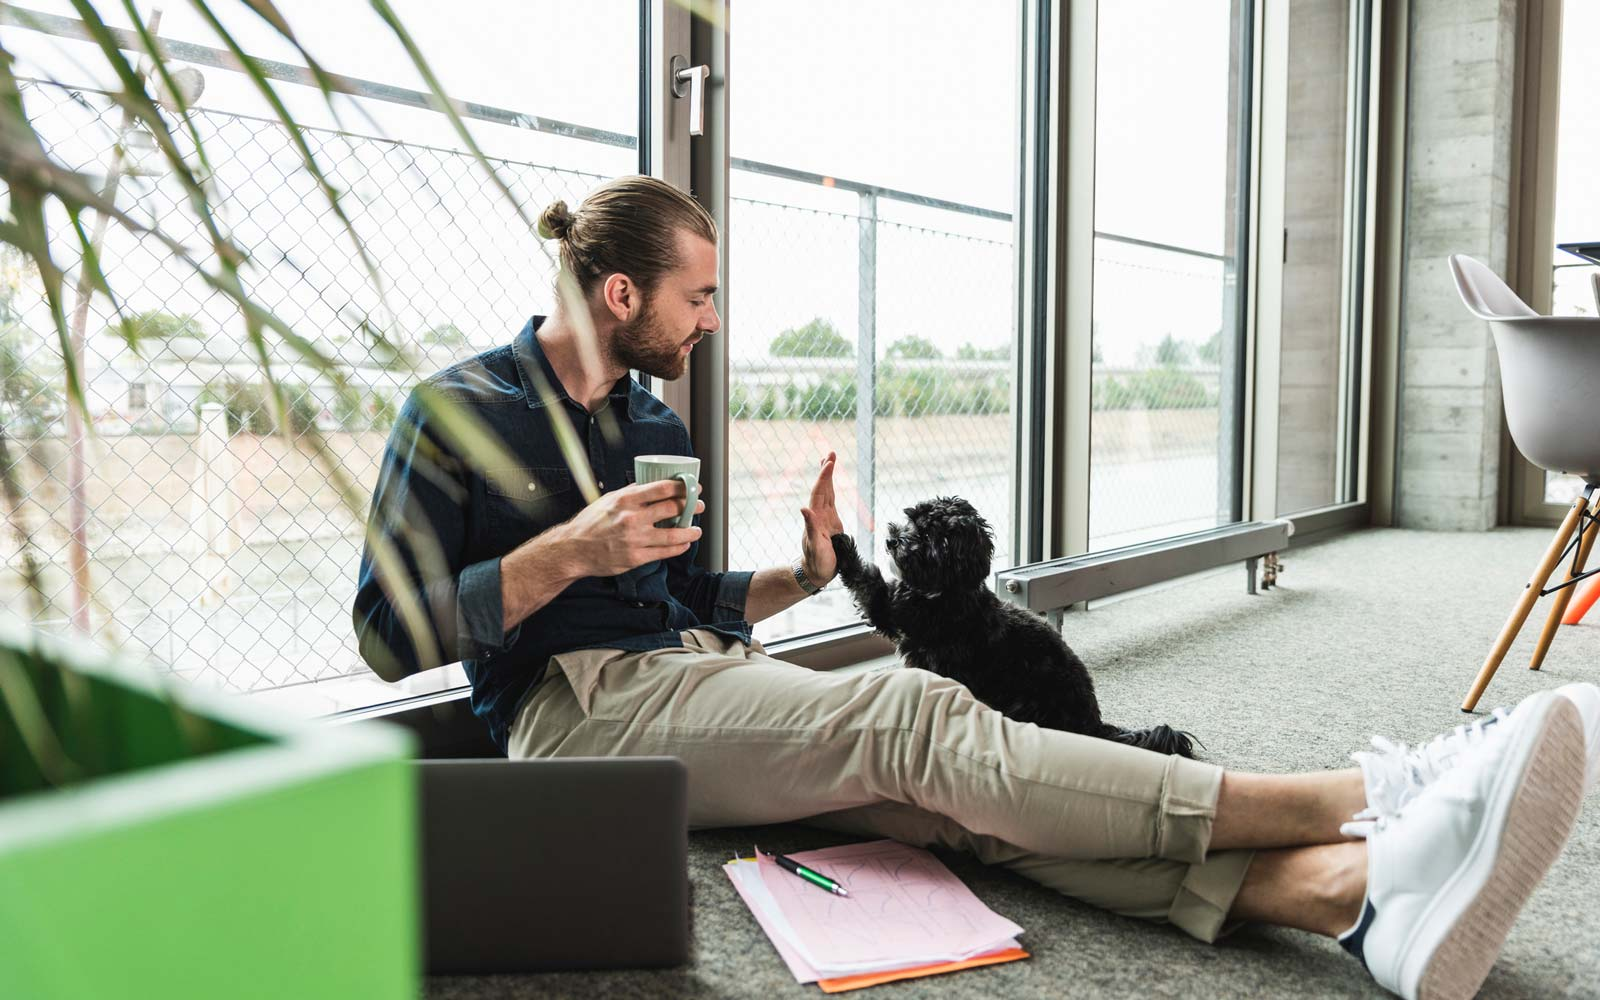 10 Companies in the U.S. That Let You Bring Your Dog to Work